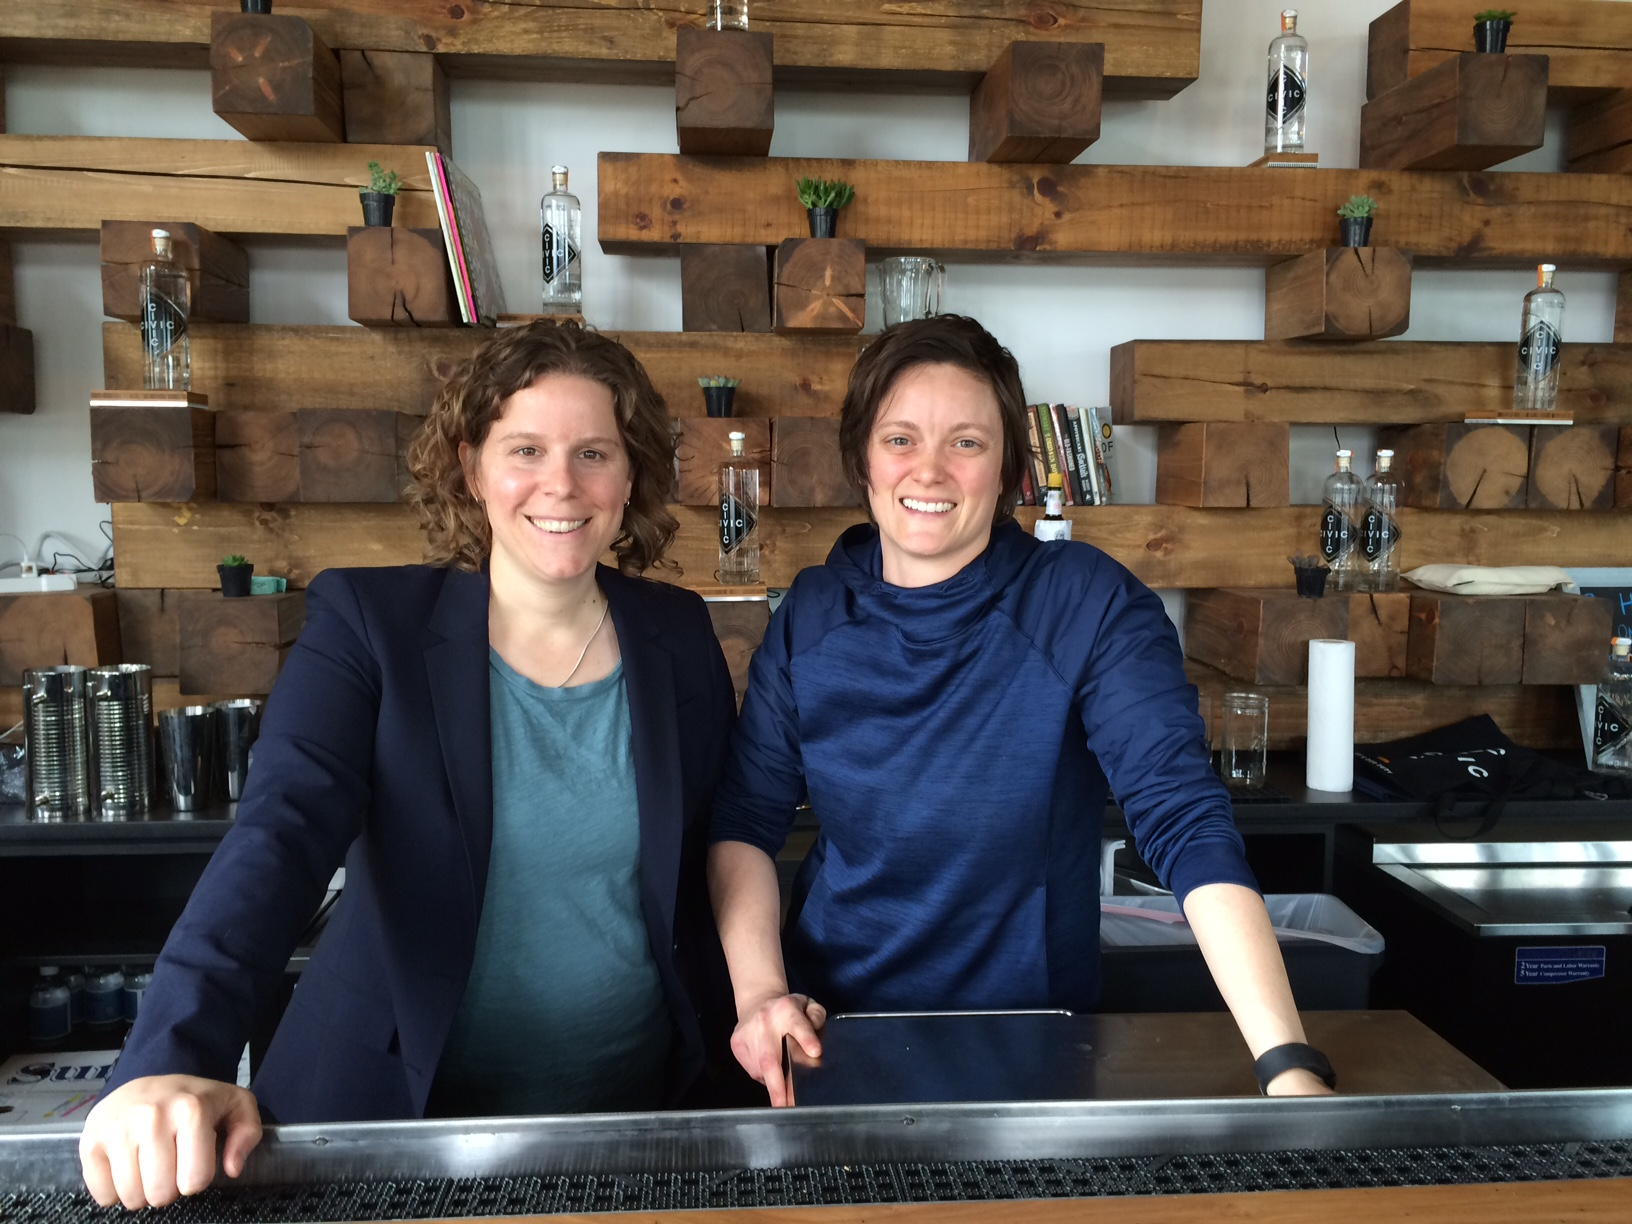 Pia Caursone, left, opened a bourbon distillery with her best friend Rachel Gardner, right, in May.  Carusone decided to pursue her dream of owning a distillery after the 2011 shooting of her boss, Gabby Giffords. (WTOP File Photo/Rachel Nania)